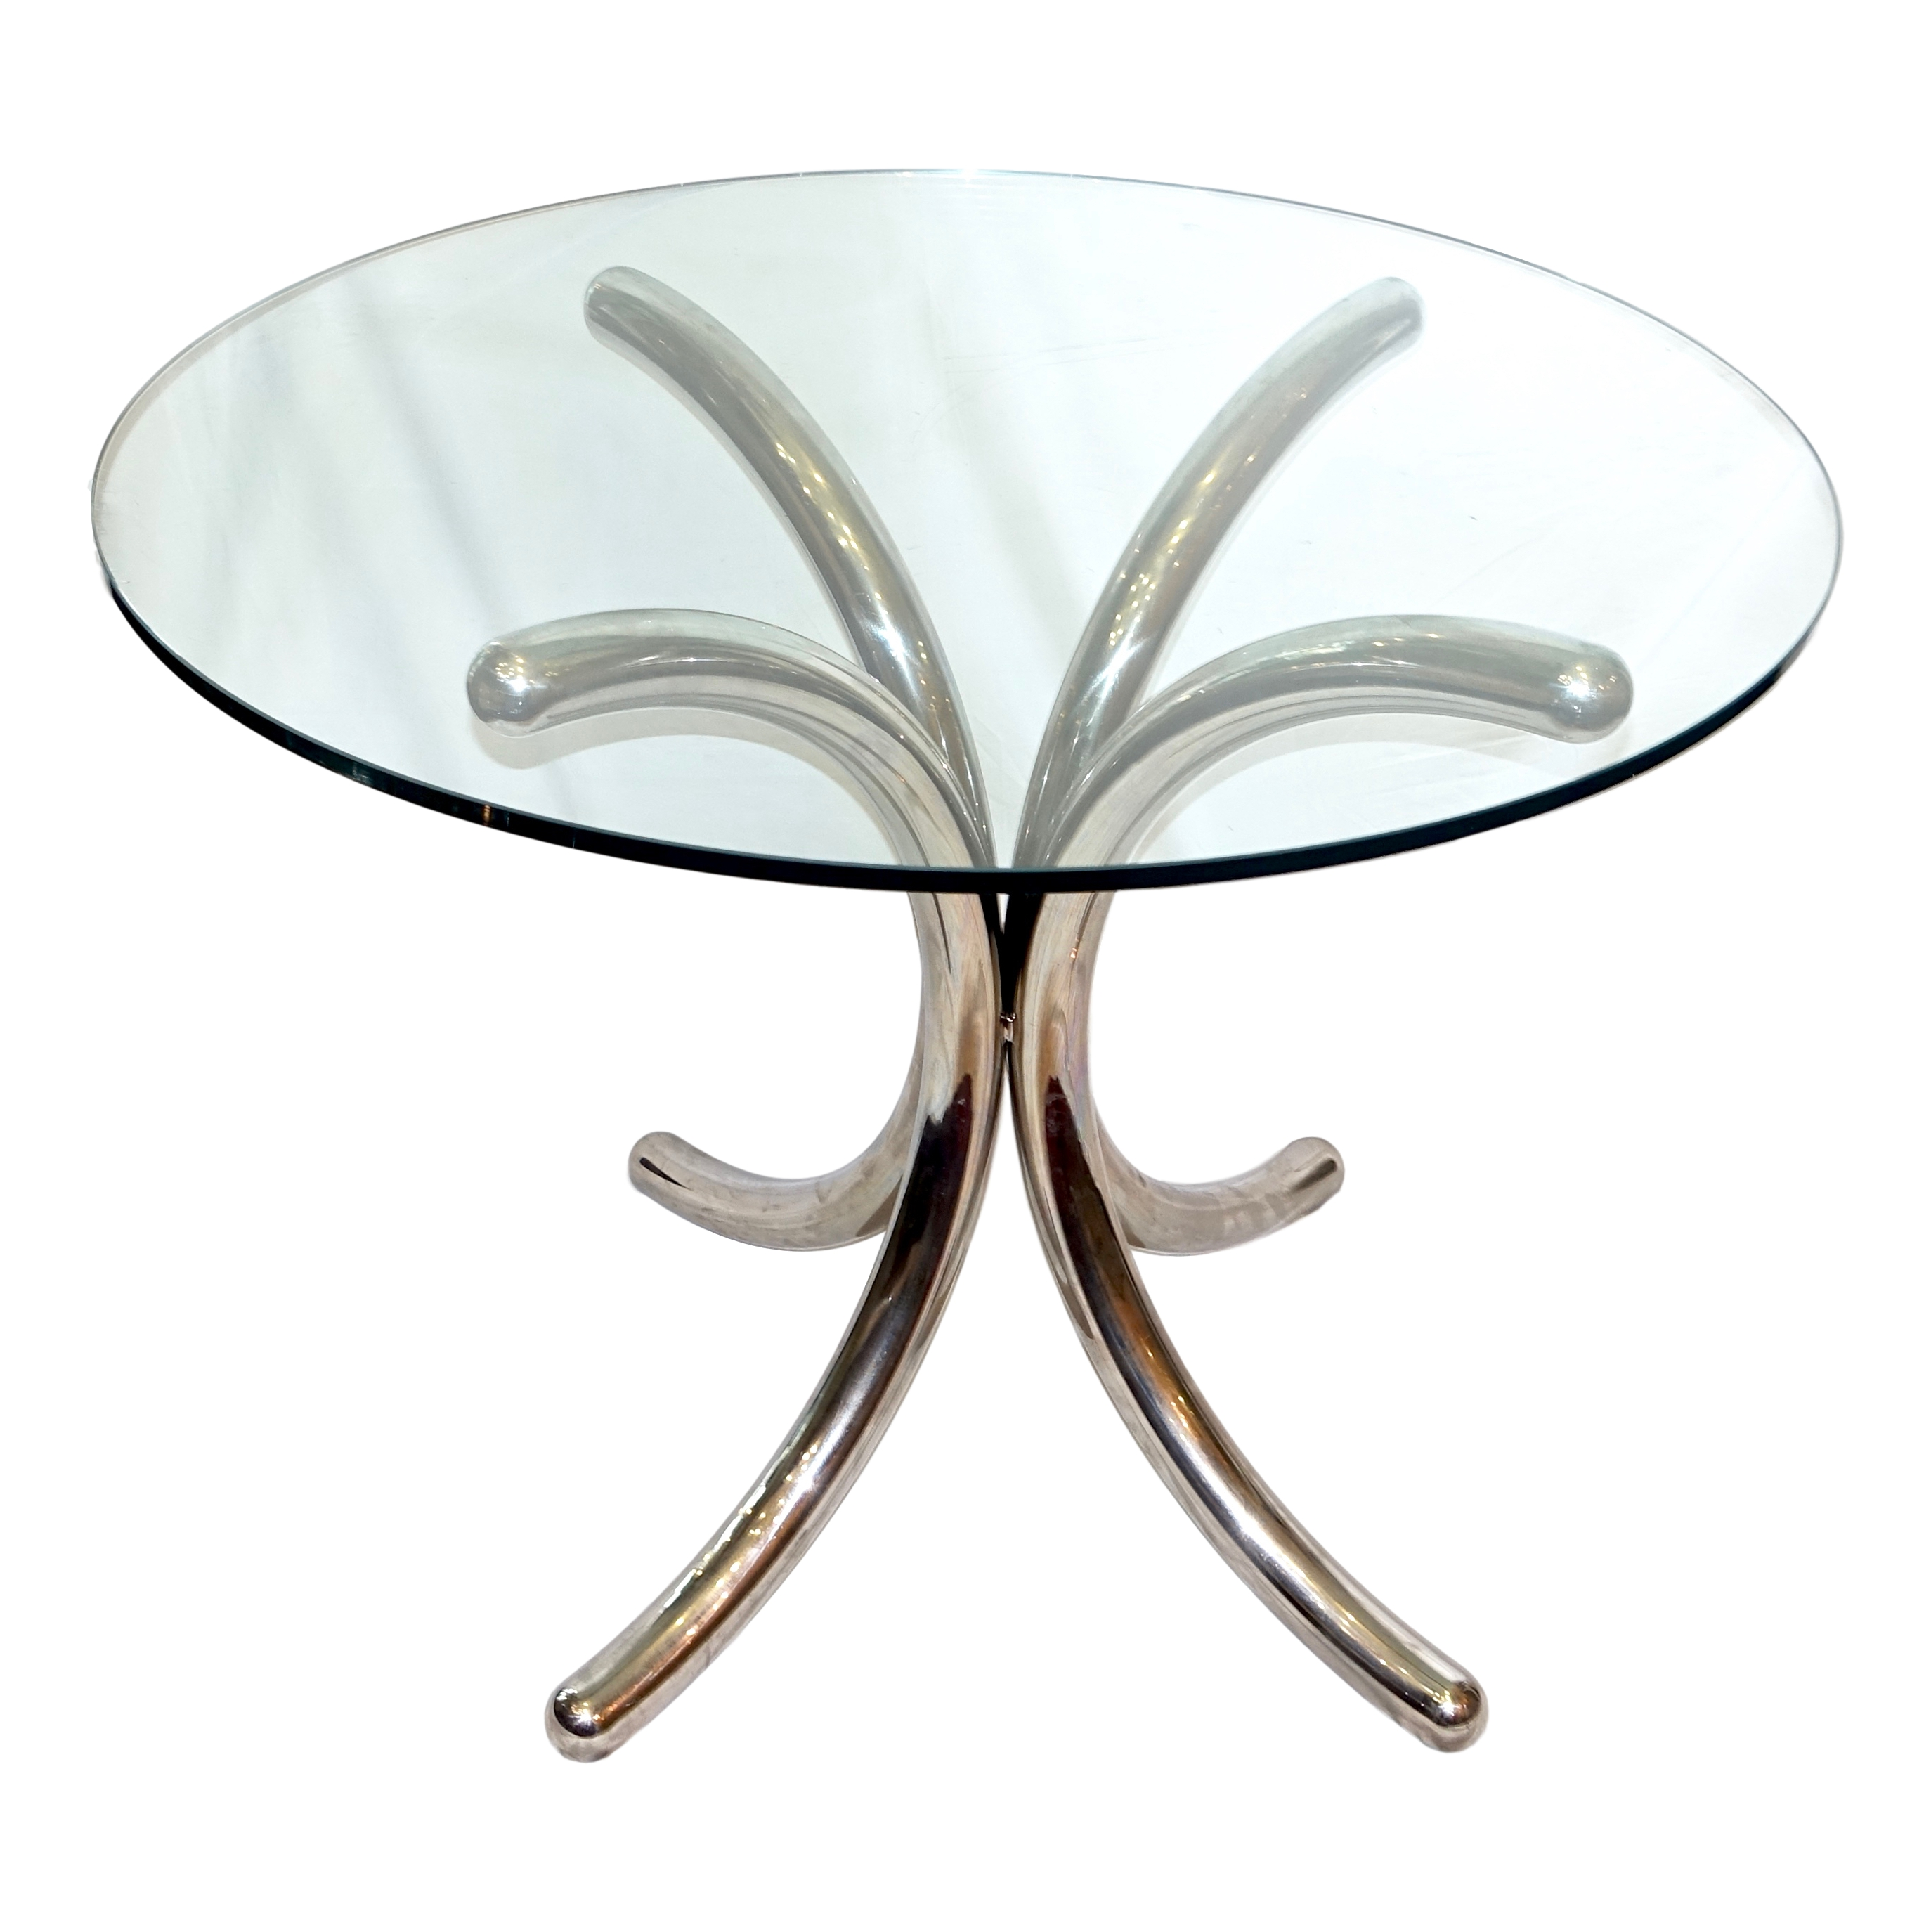 Midcentury Chrome And Glass Table Carlos De La Puente Antiques